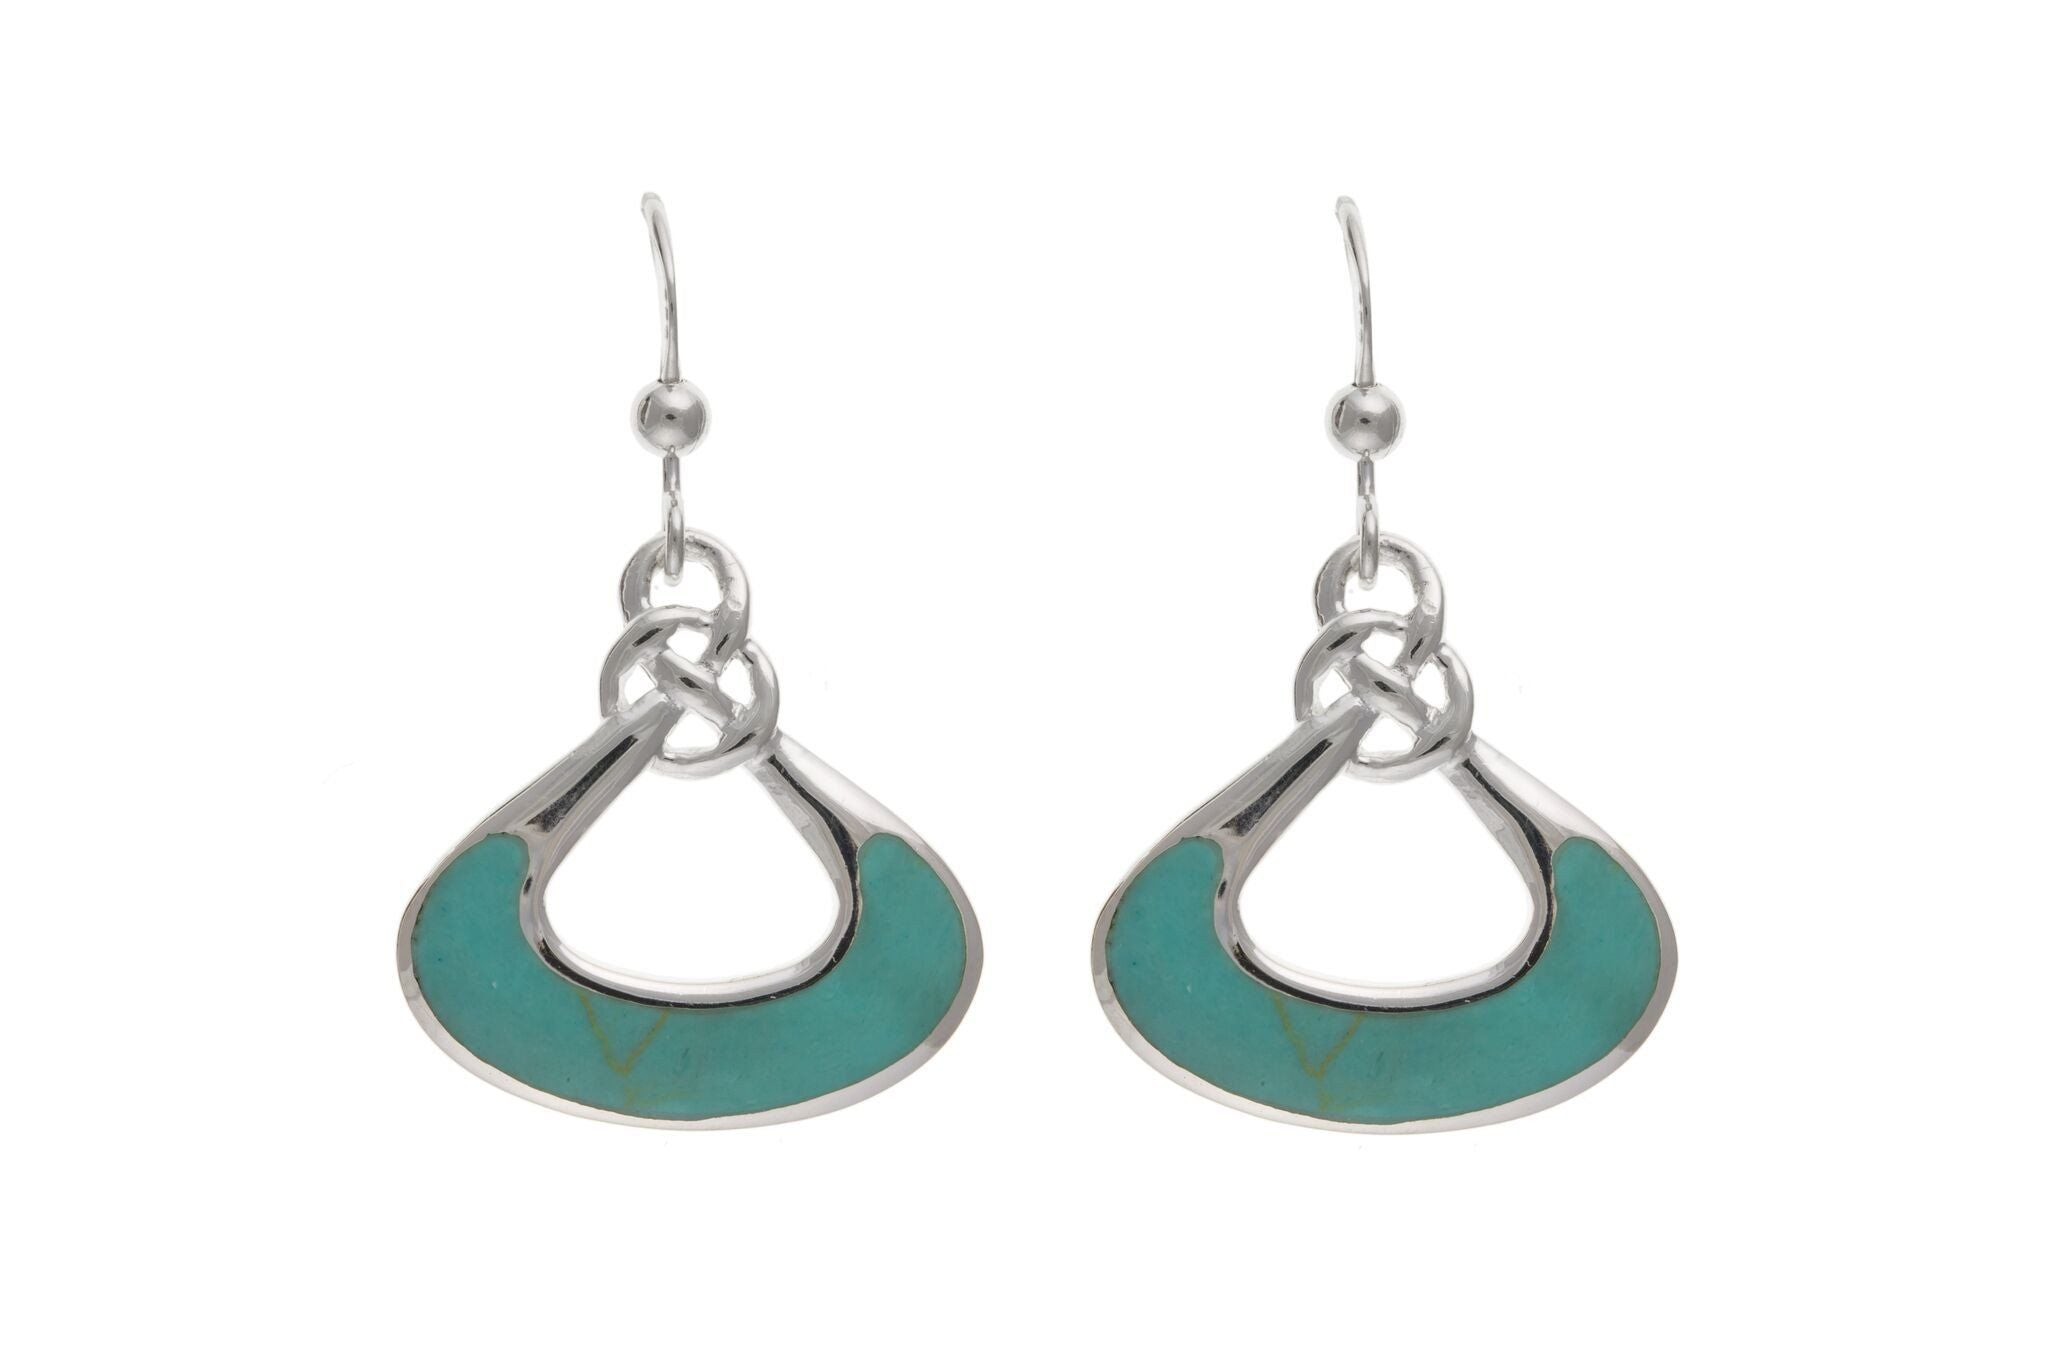 Sterling Silver & Turquoise Drop Earrings SV0478BP - Jay's Jewellery